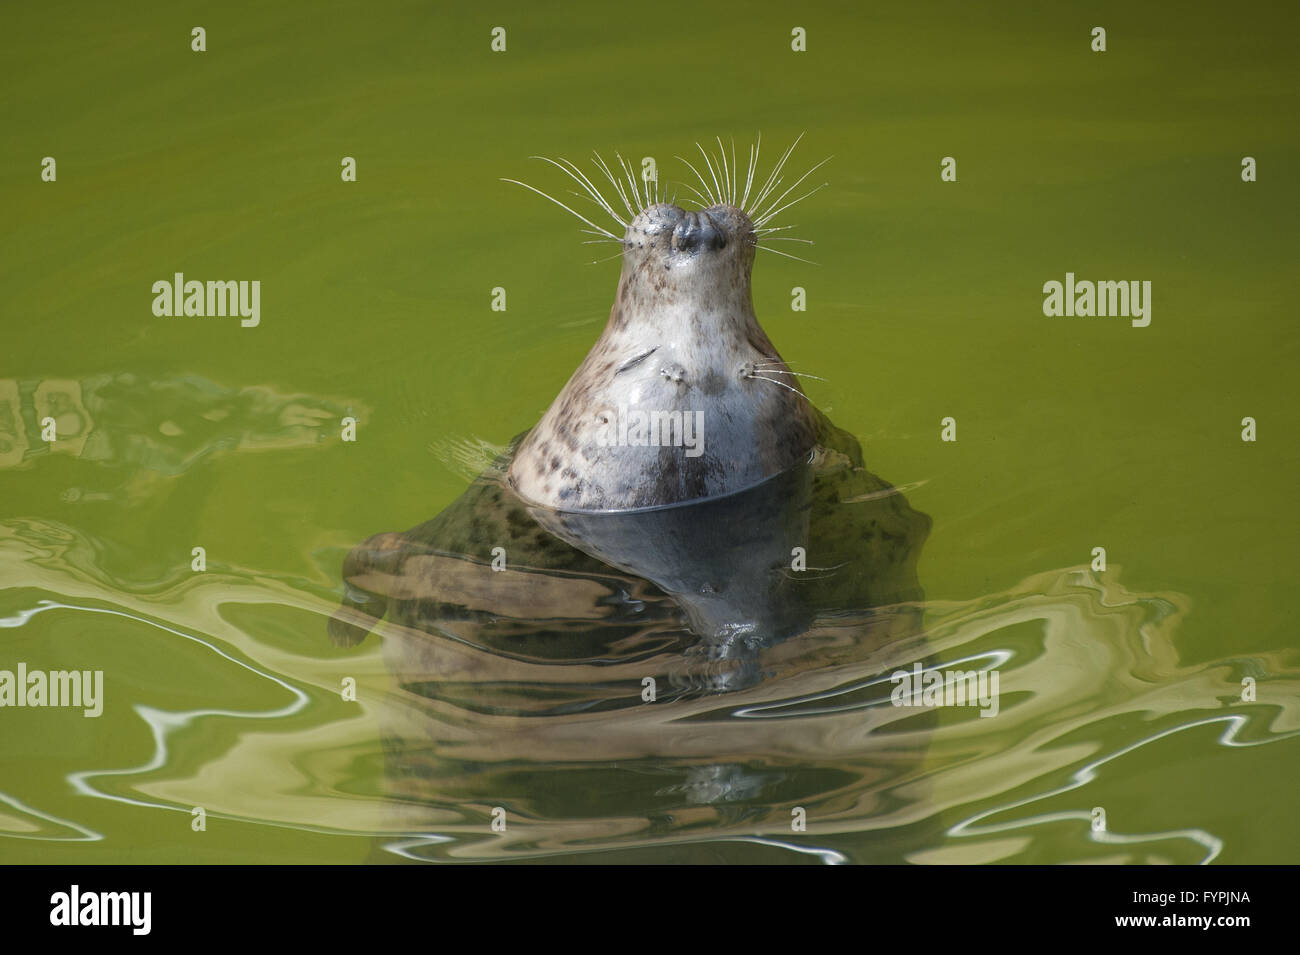 Fur seal emerges from the water. - Stock Image